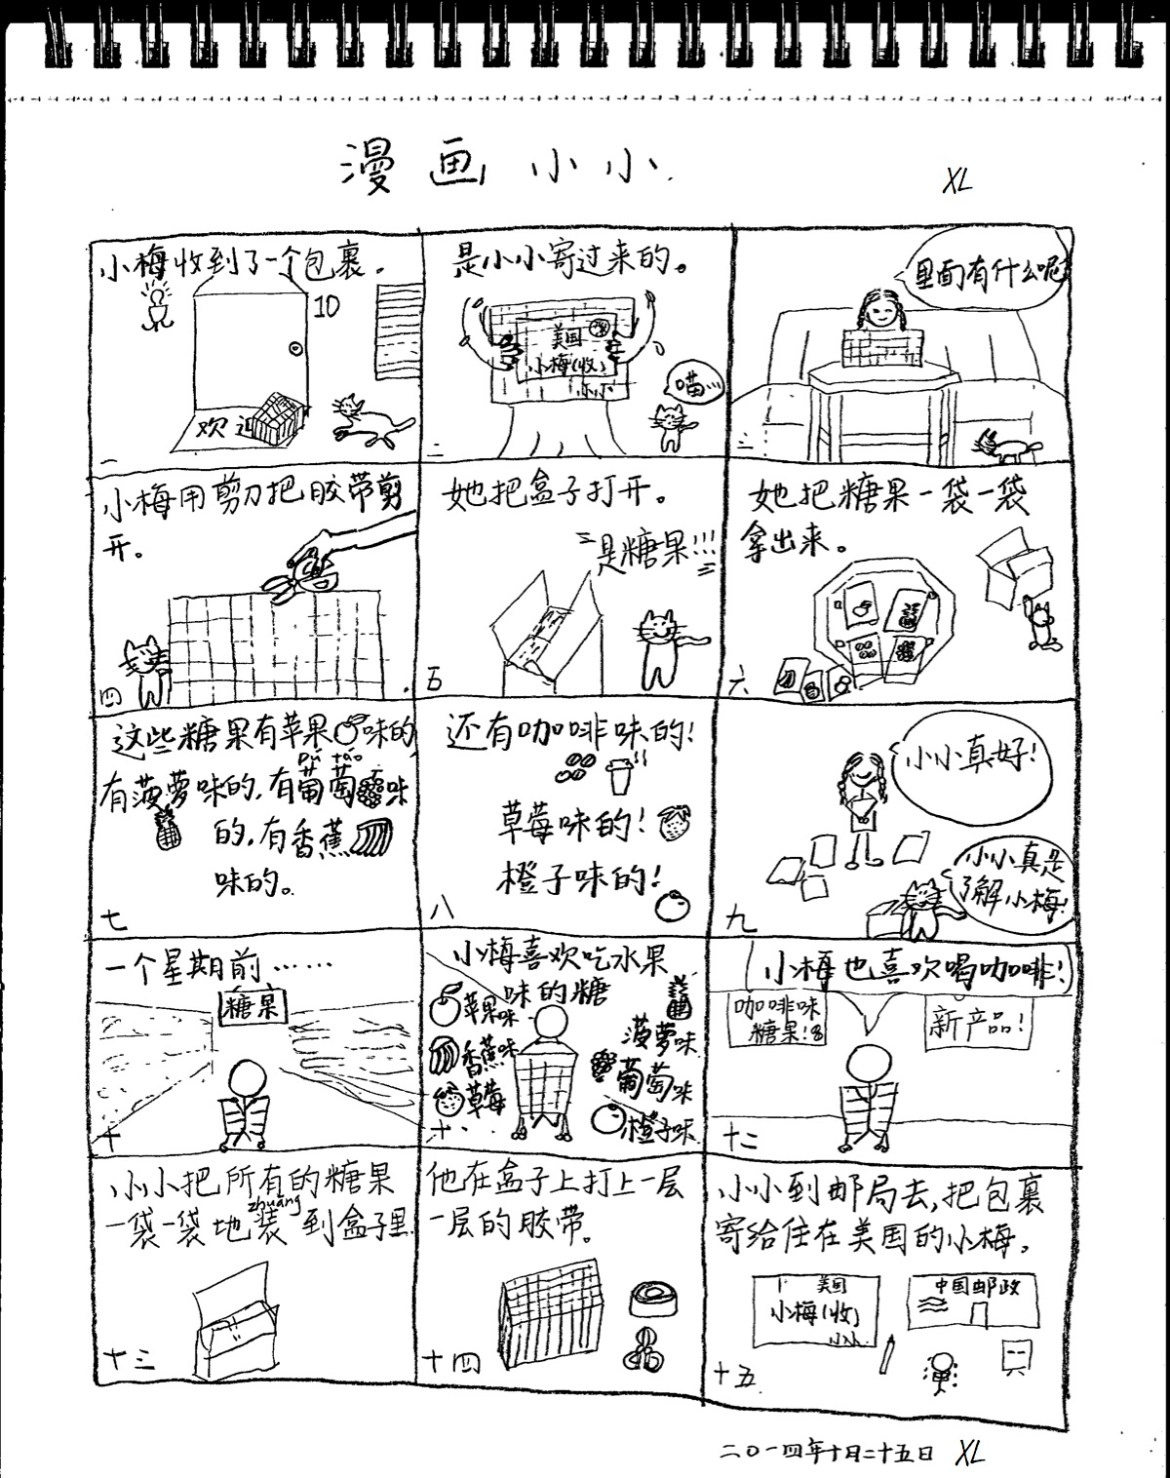 xian_lu_comic_strip_for_cfl_samples2